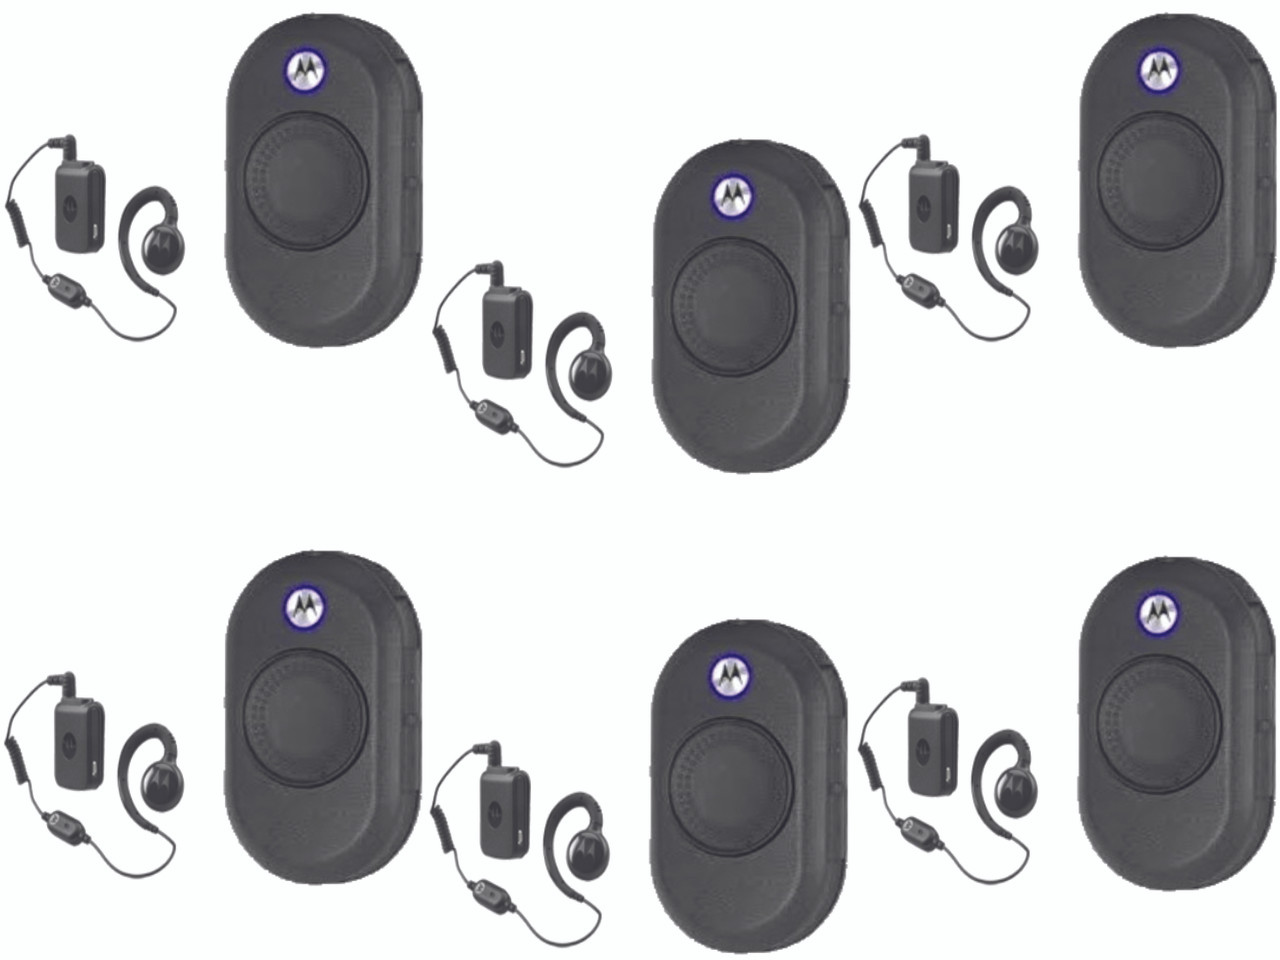 Motorola Six Pack Of Clp 1060 Bluetooth Two Way Radio Uhf 1 Watt With Free Wireless Headset Included